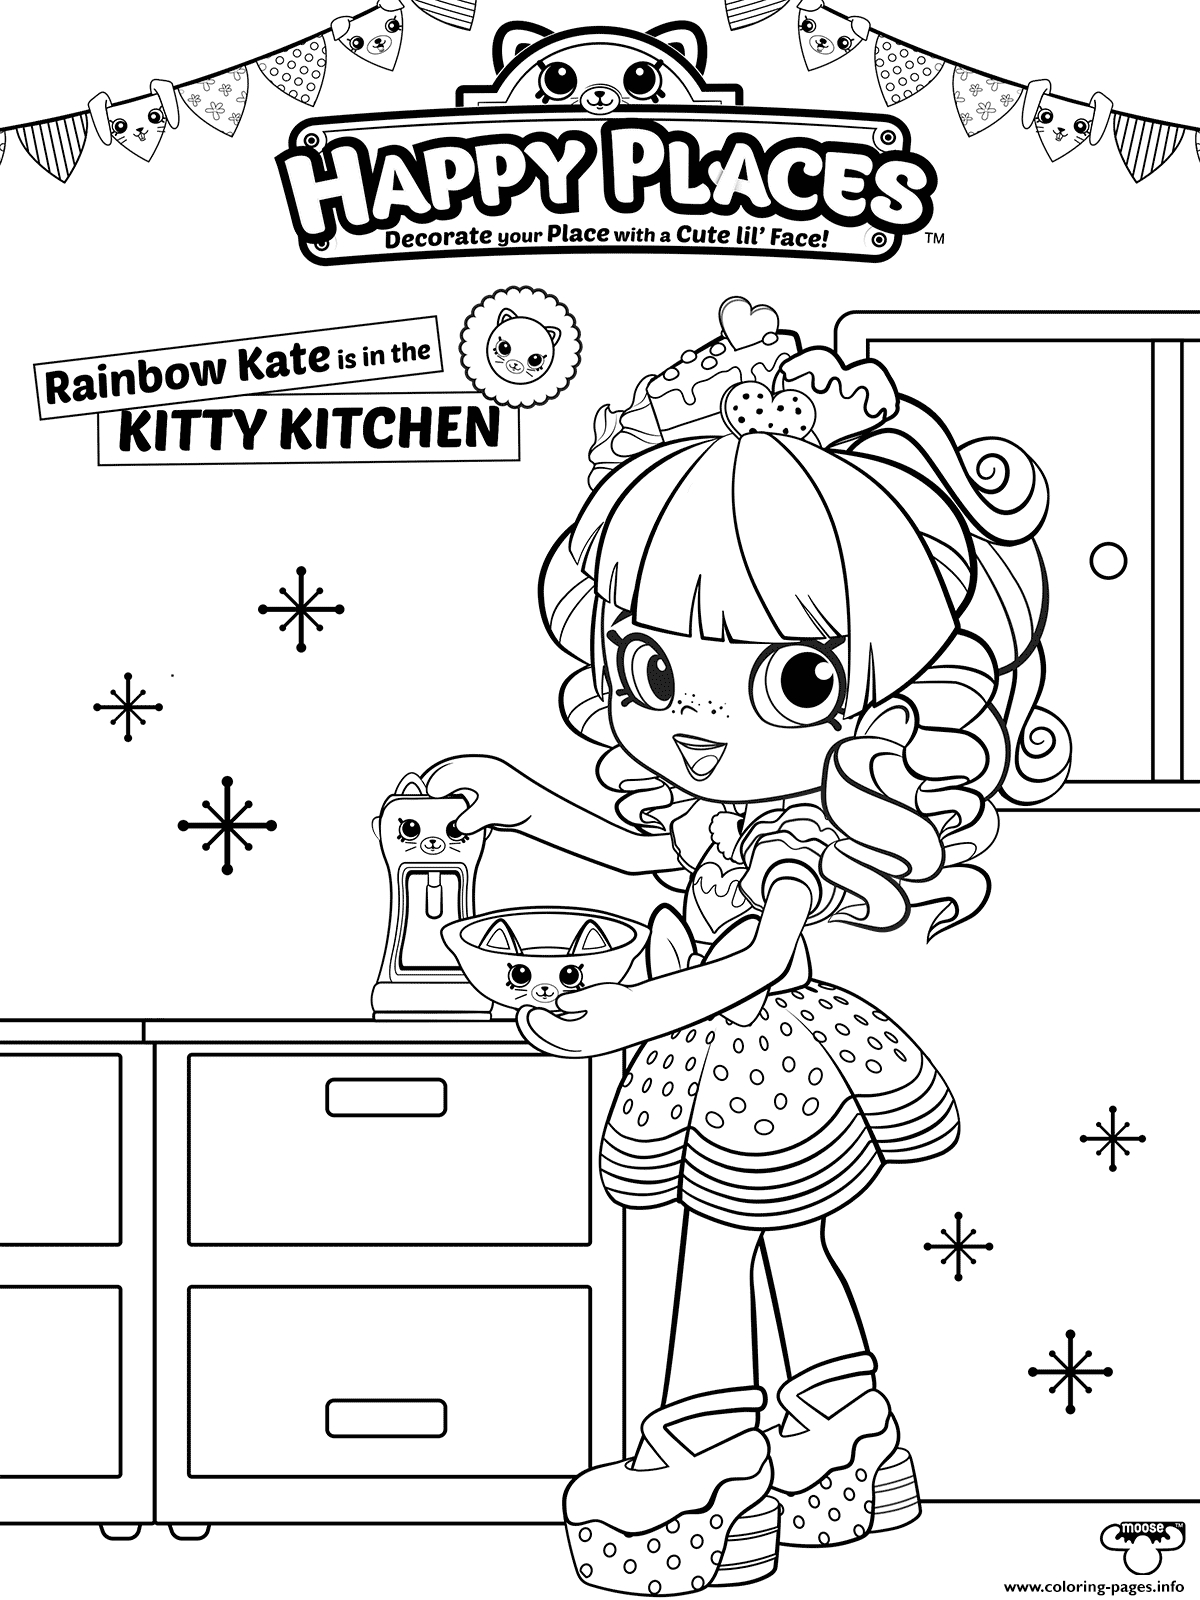 minecraft printable coloring pages - shopkins happy places printable coloring pages book